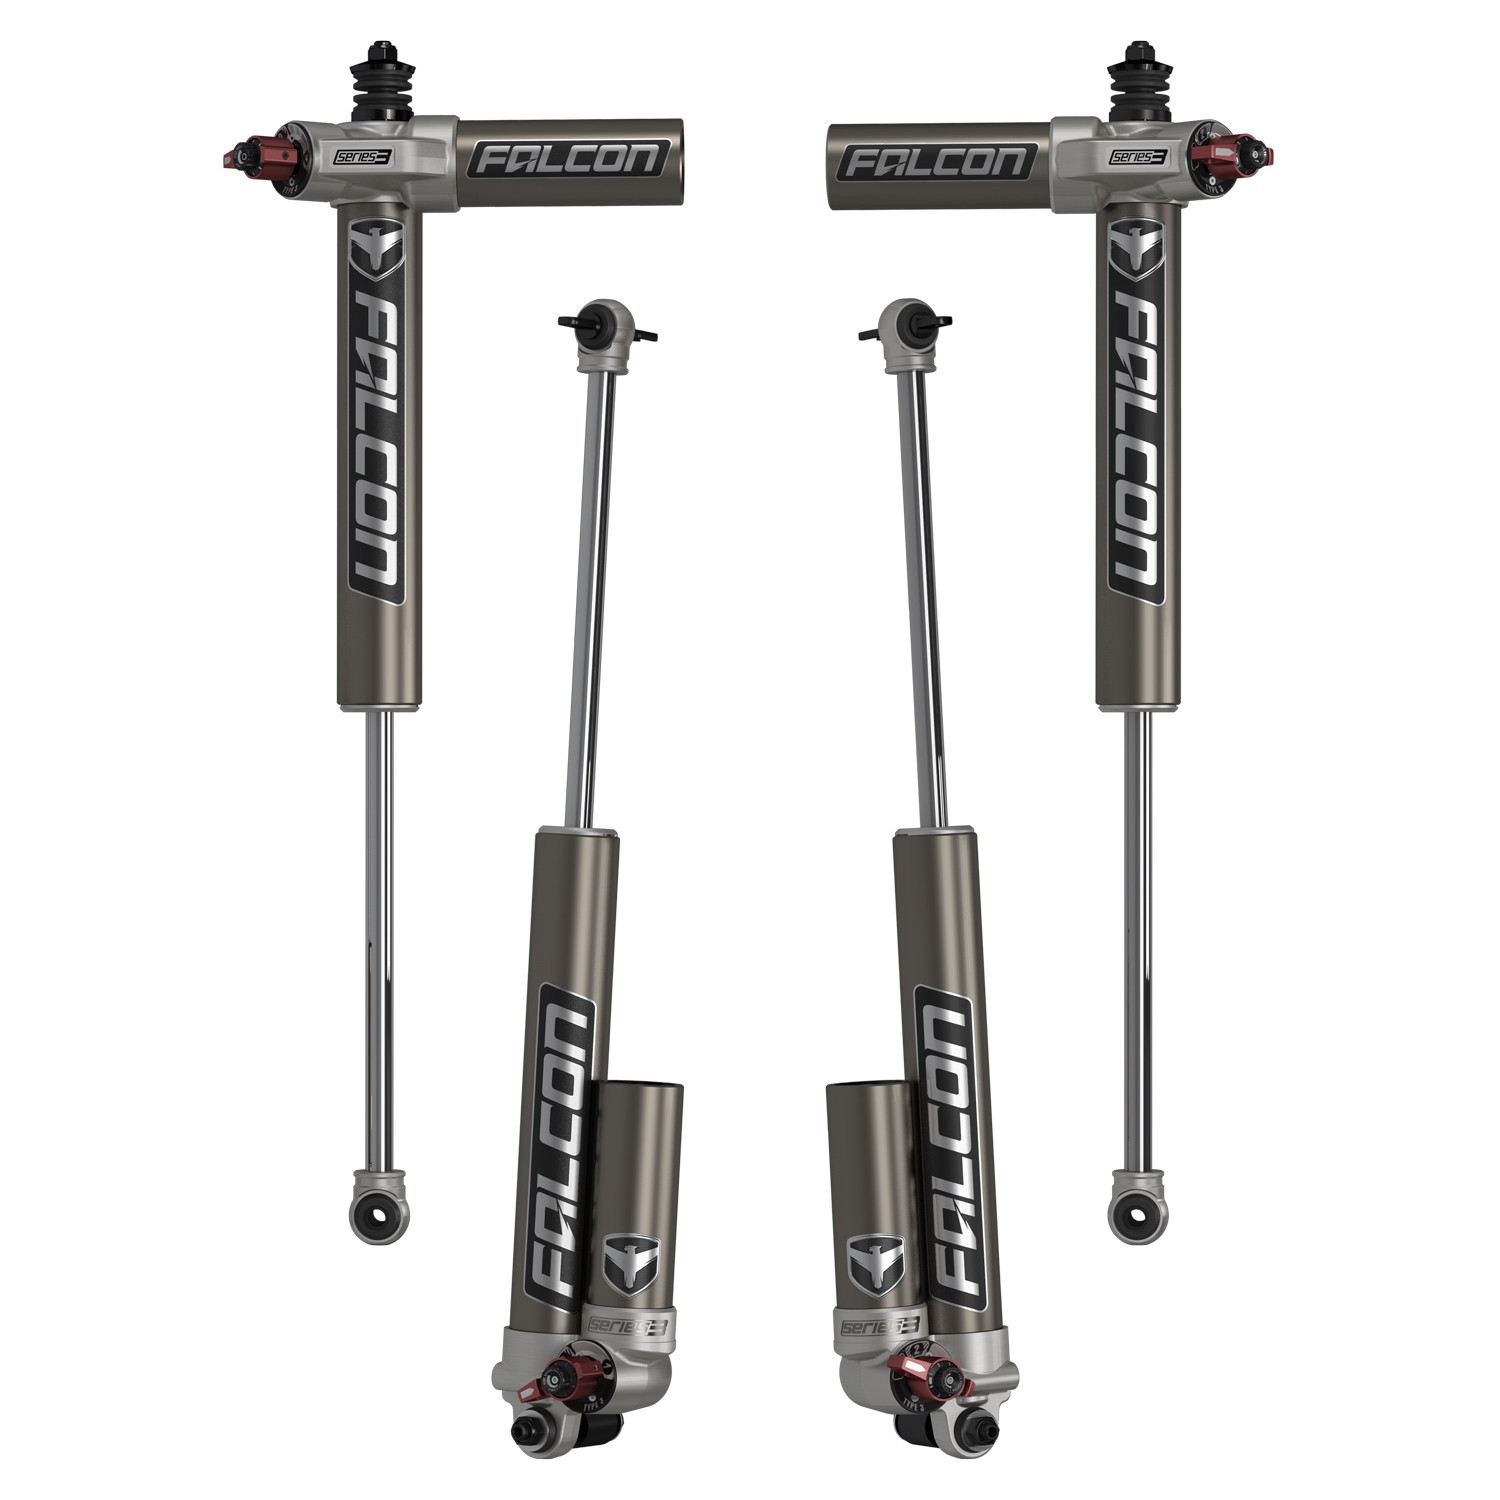 Teraflex Falcon Series 3.3 Adjustable Piggyback Shocks Front & Rear Kit 1.5-2.5in Lift - JK 2dr